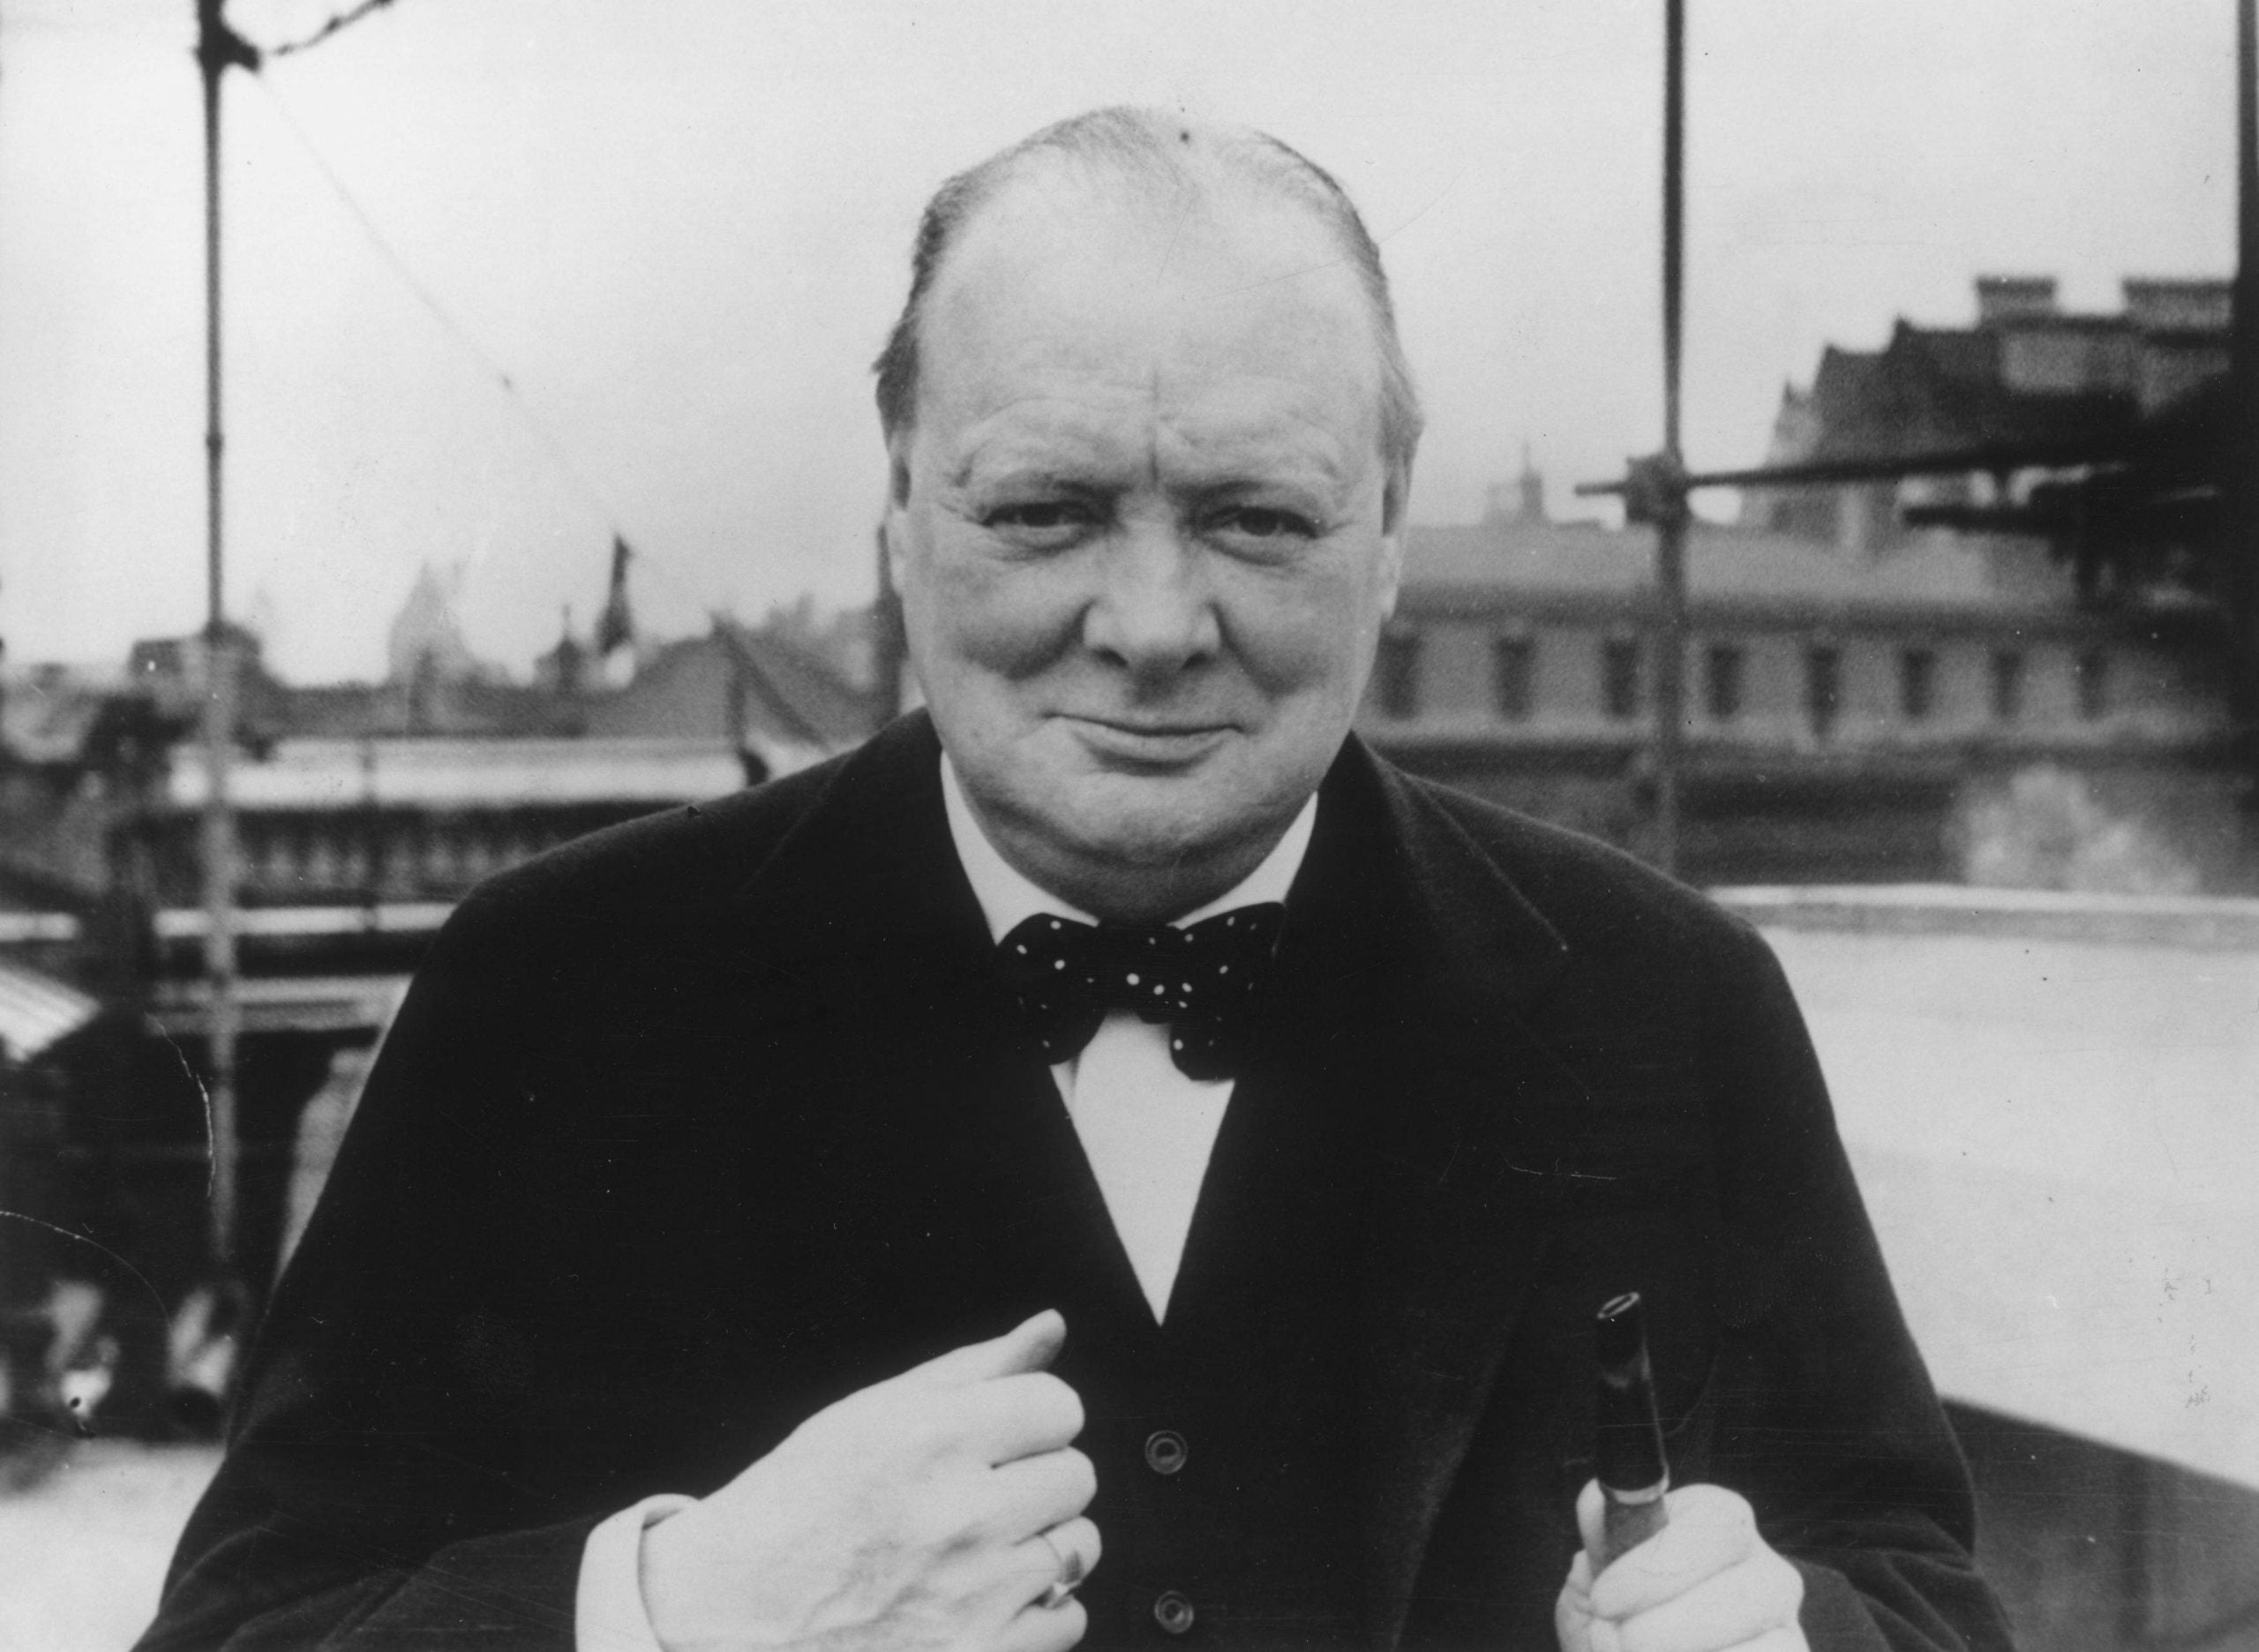 BBC Radio 4's Book of the Week, Churchill's Passions, is full of powerful images, and sounds fantastic